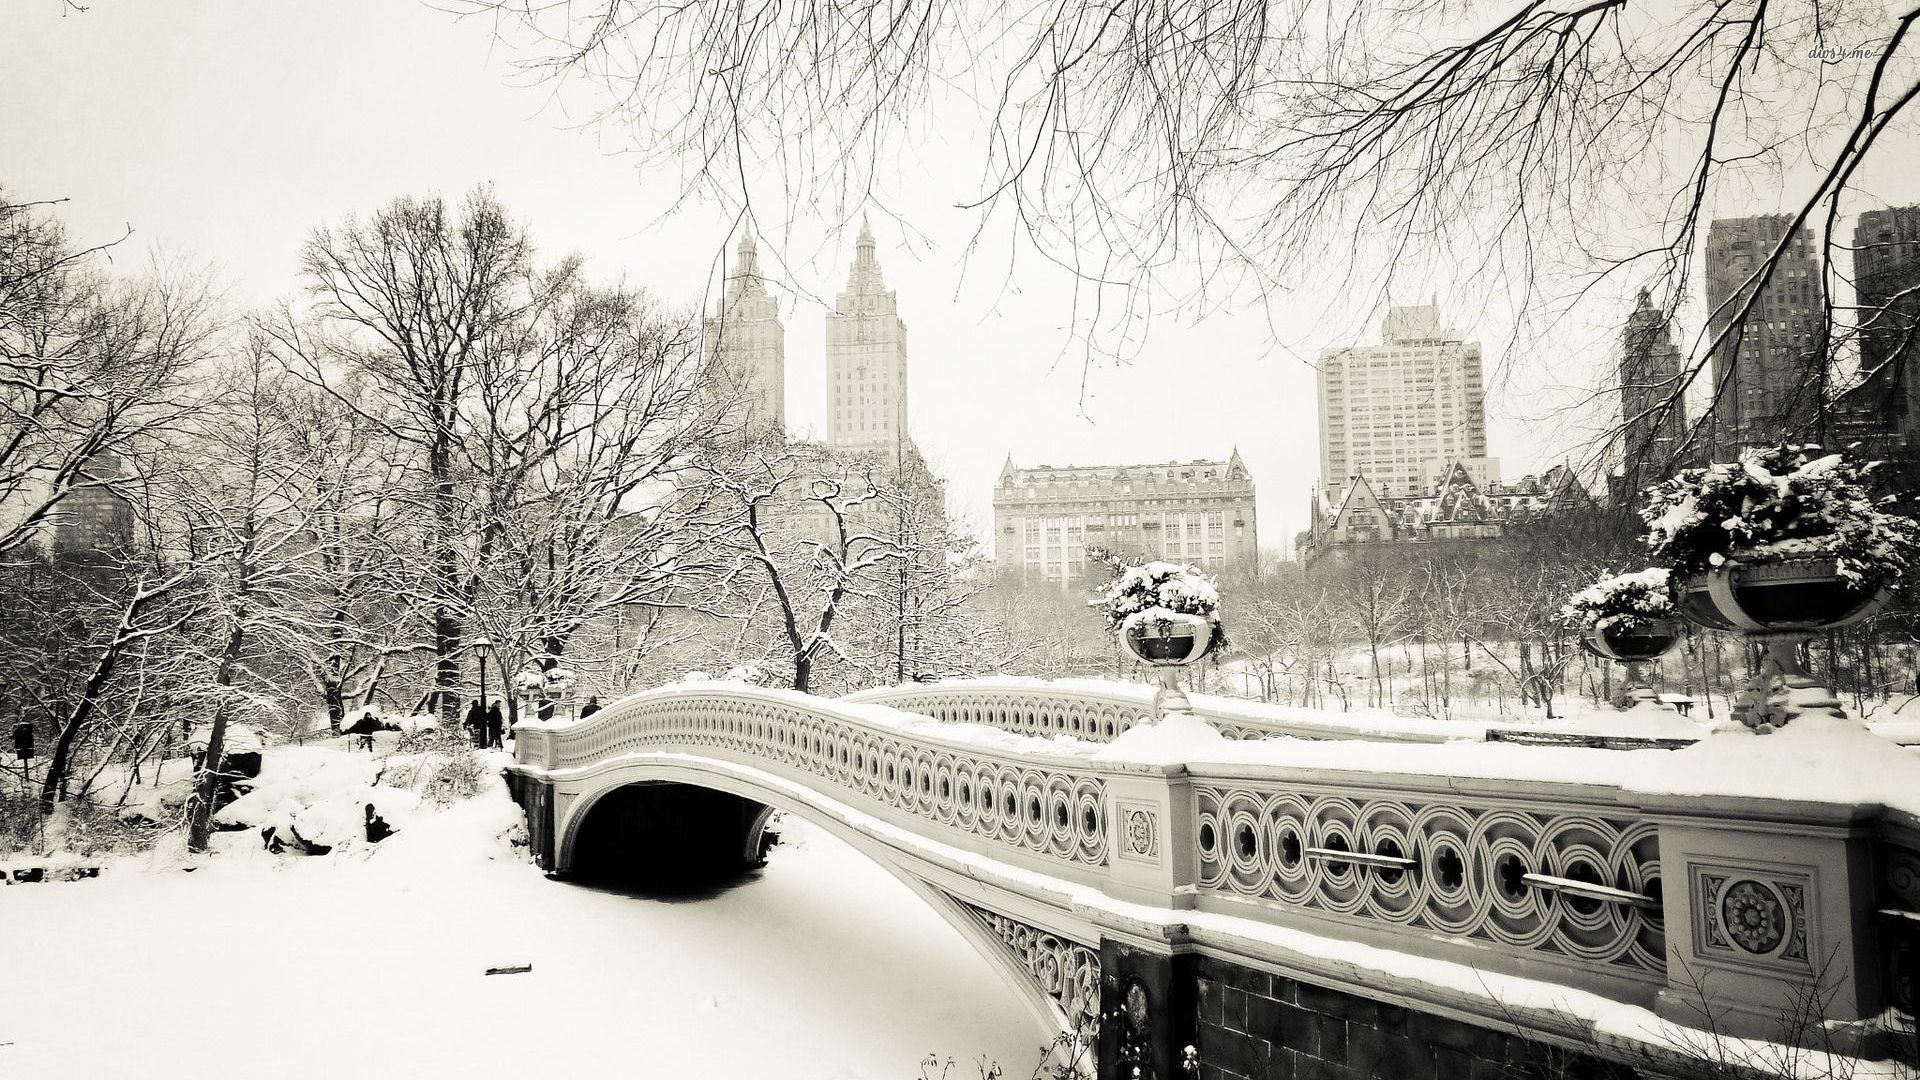 New york city winter wallpaper wallpapersafari for Things to do in nyc in winter